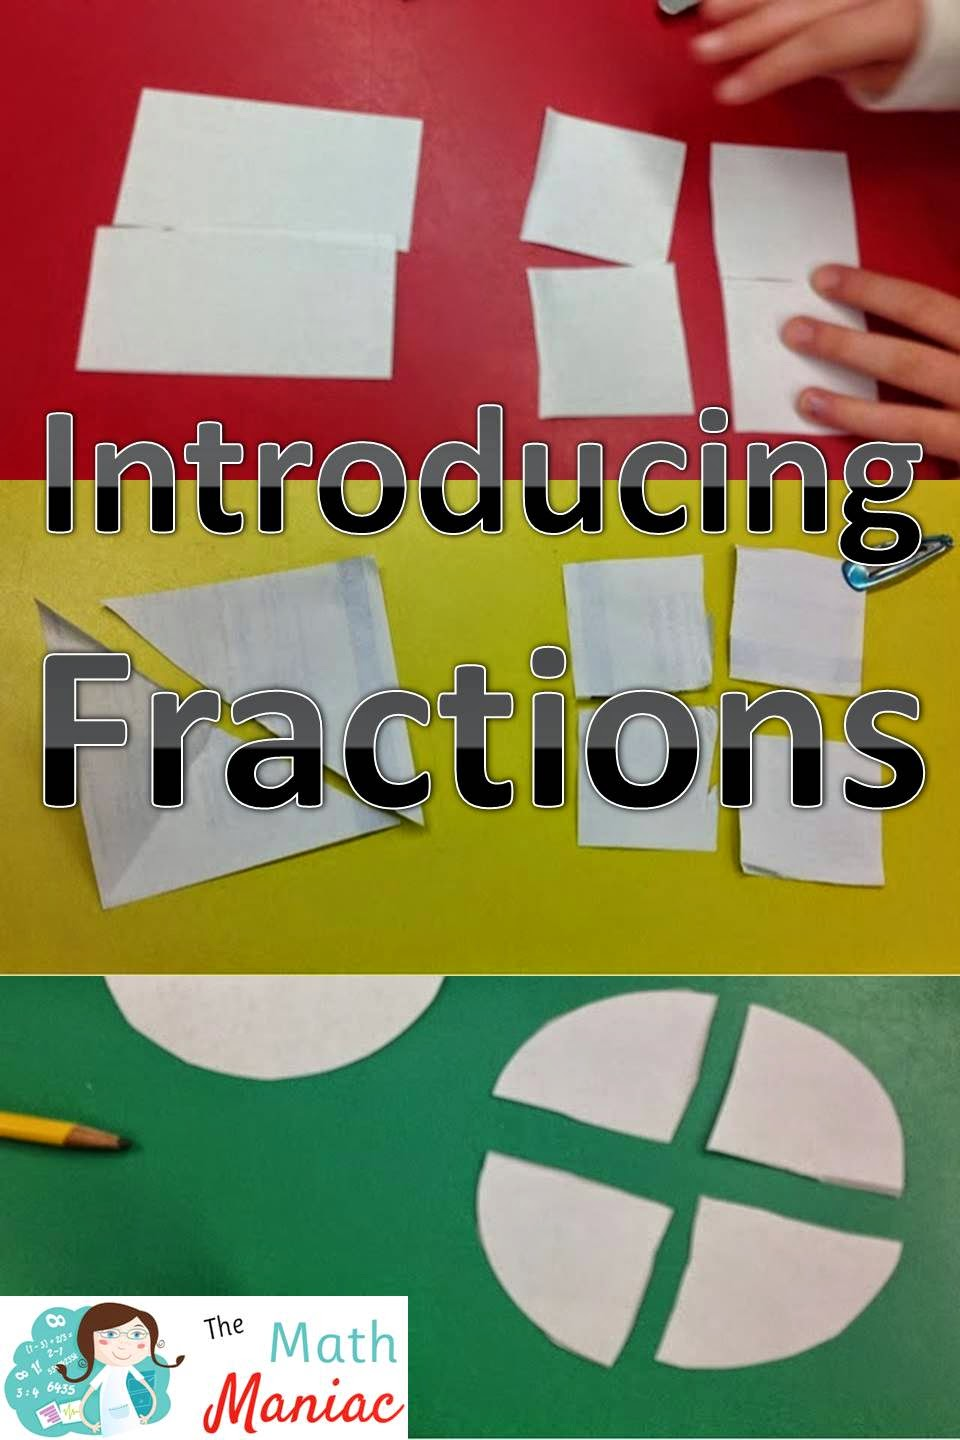 Worksheet 1st Grade Fractions the elementary math maniac fractions first grade and common core